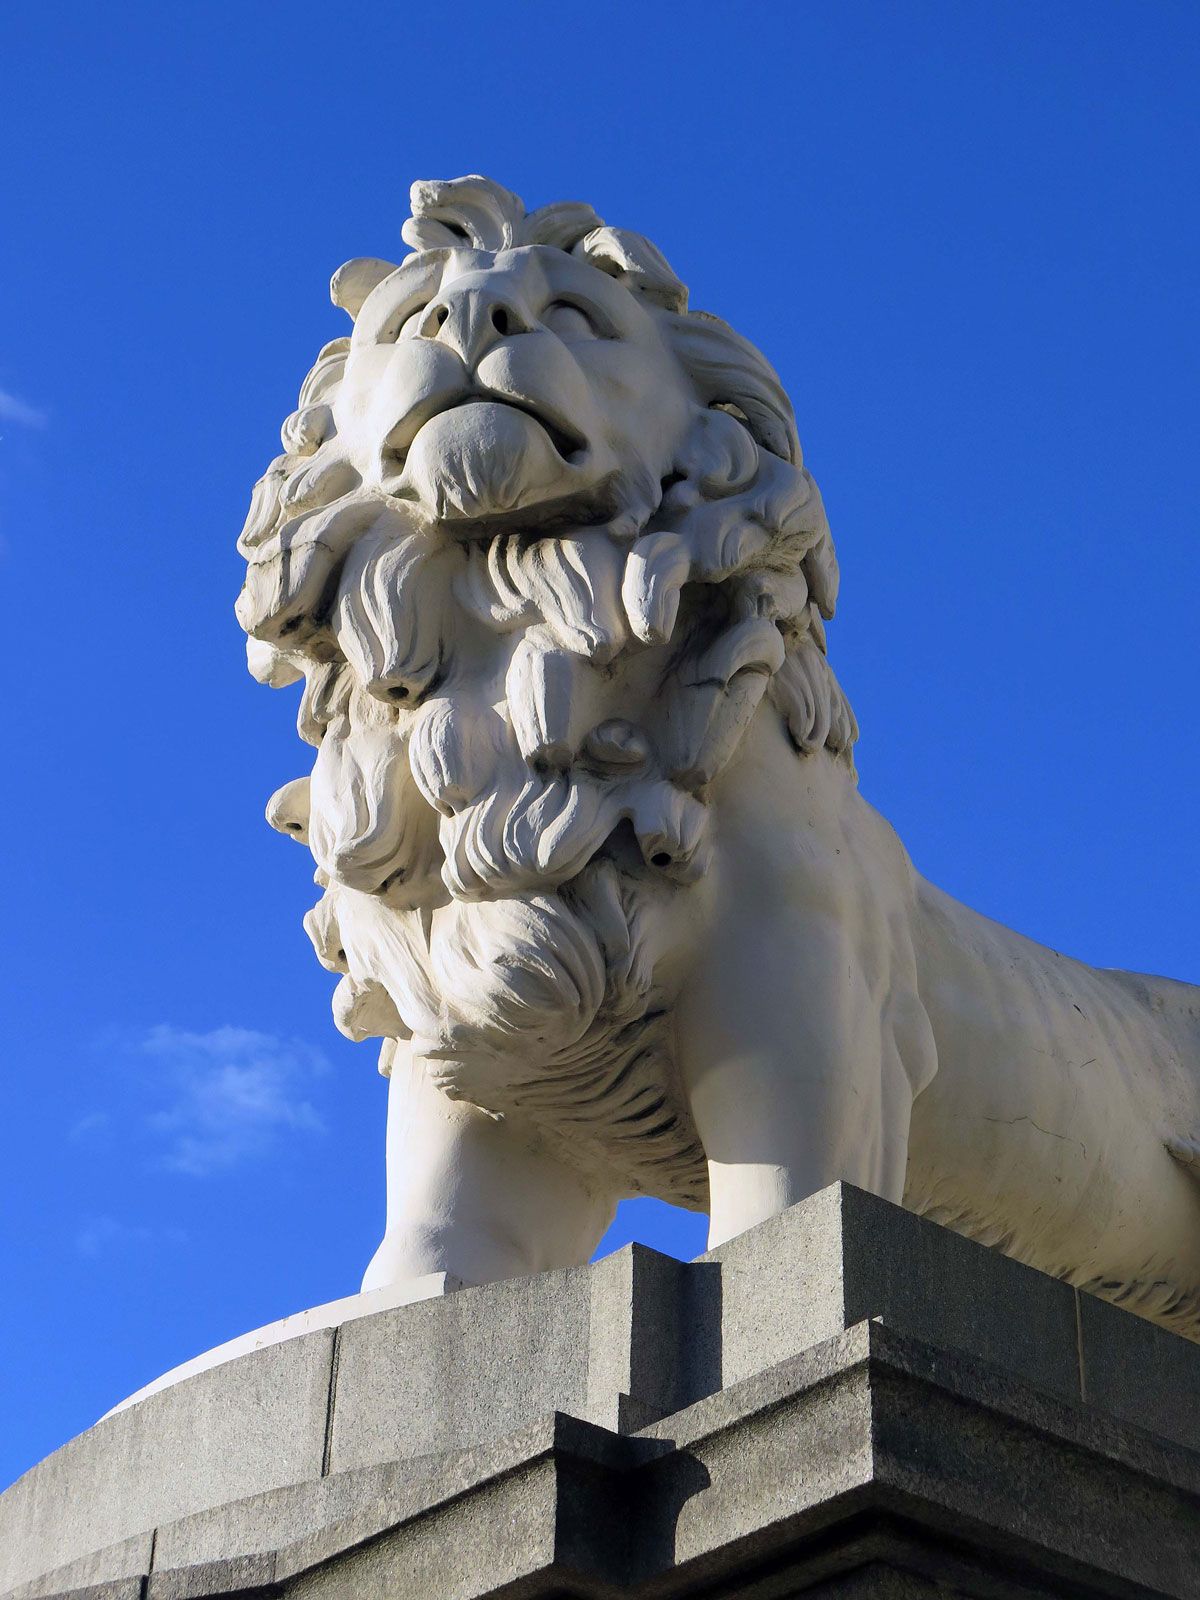 The South Bank Lion